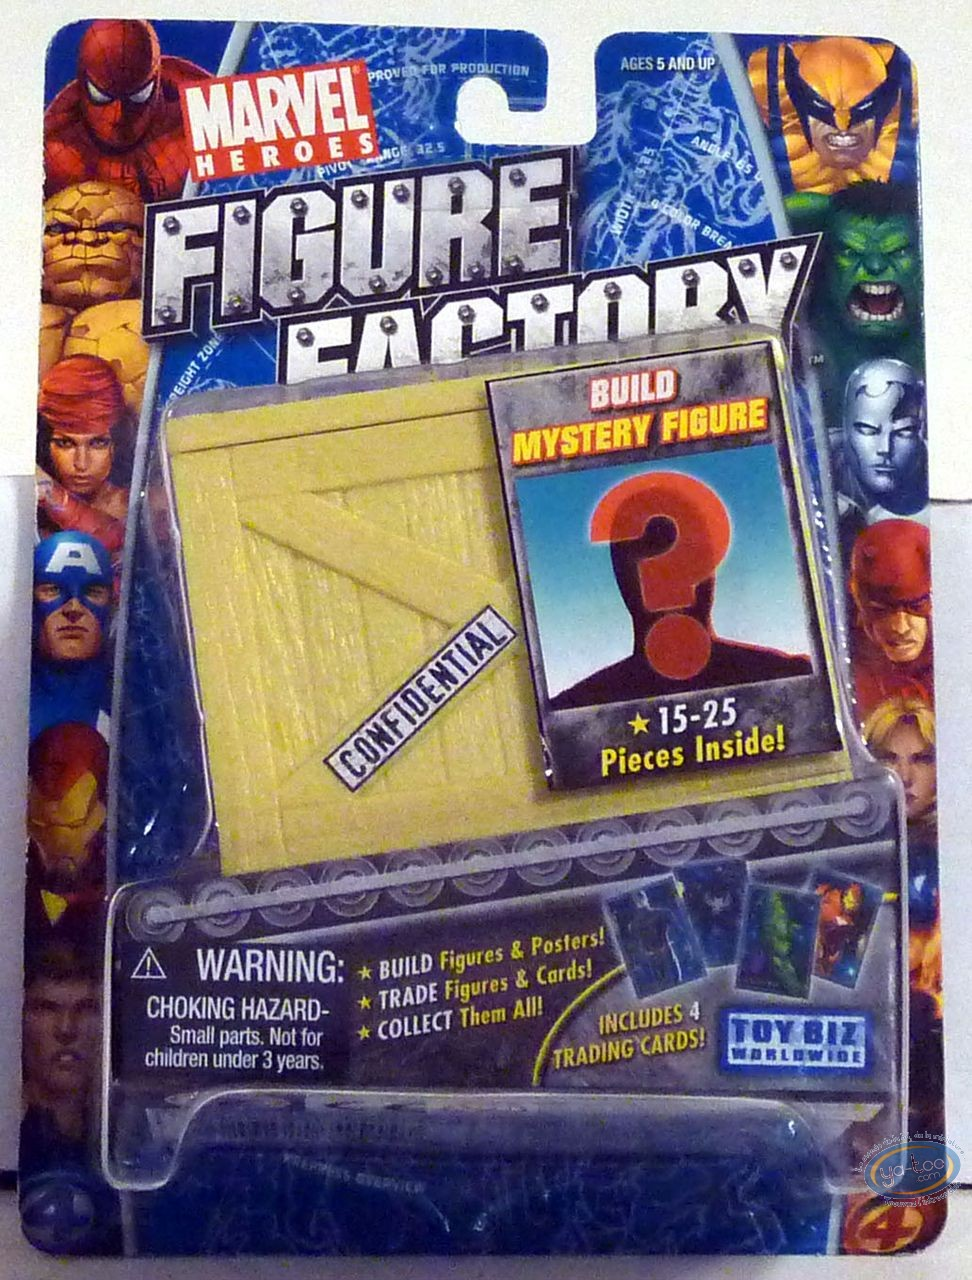 Action Figure, X-Men : Mistery figure